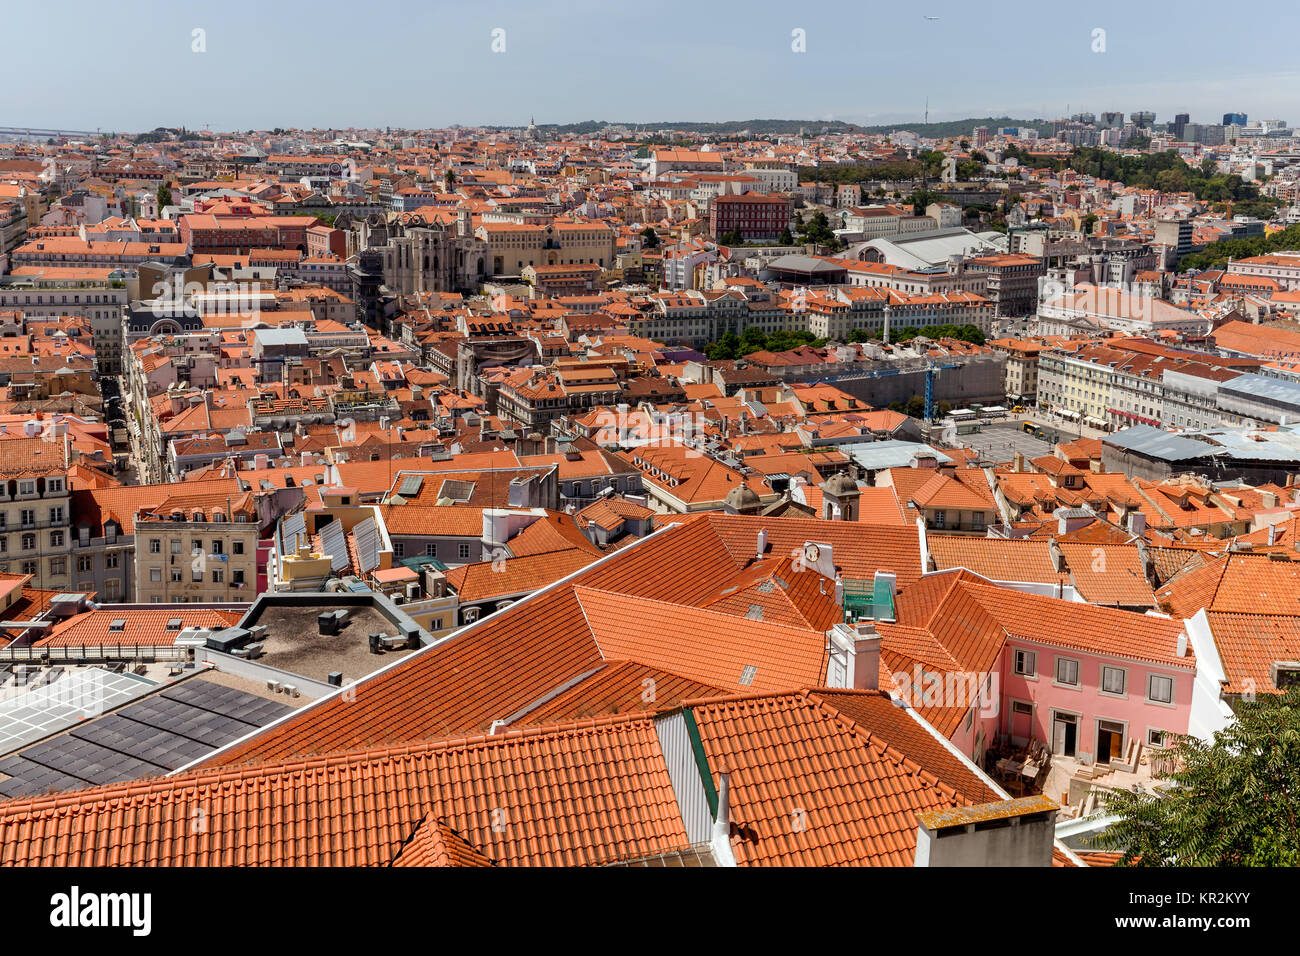 City of Lisbon, Portugal, view from the Sao Jorge Castle. - Stock Image